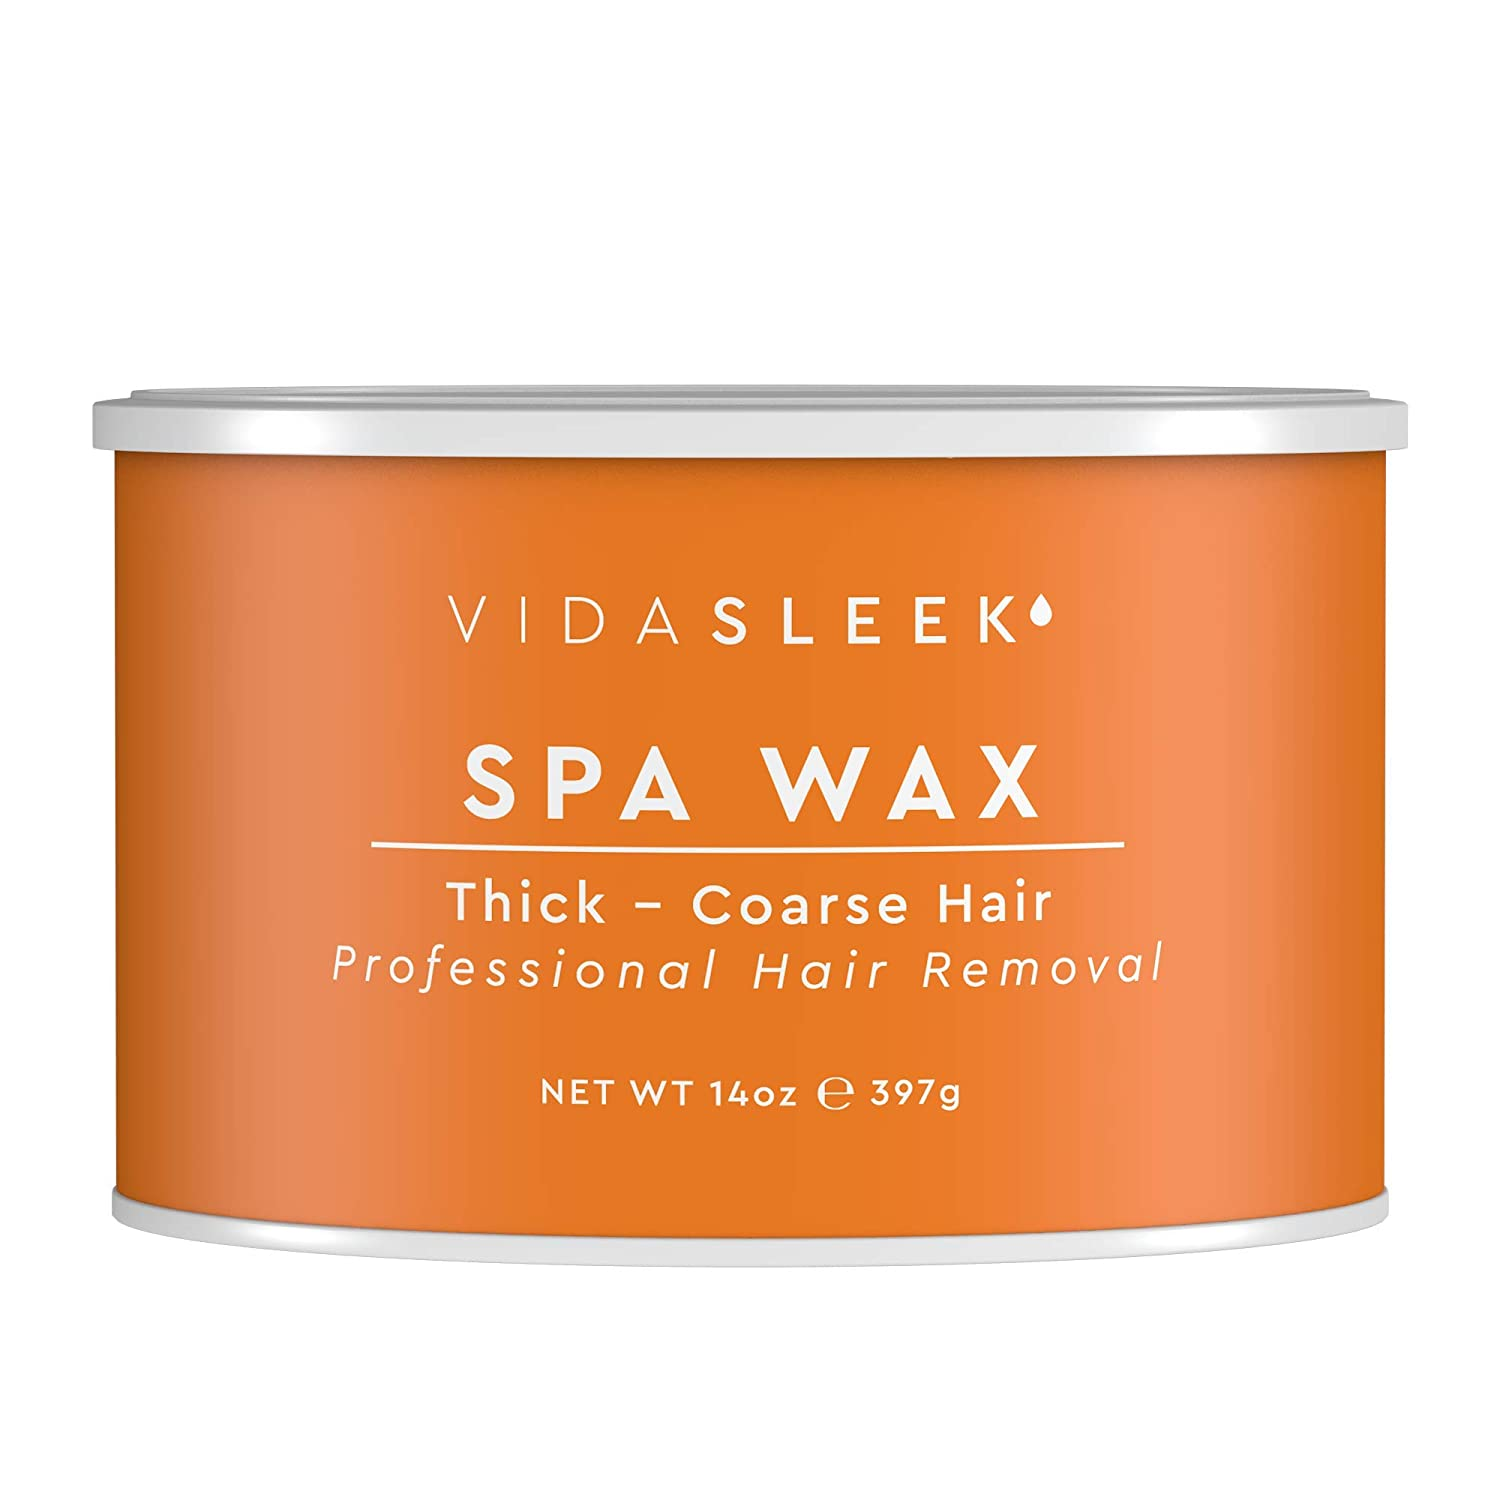 Full Body Spa Wax For Thick to Coarse Hairs - All Natural - Professional Size 14 oz. Tin